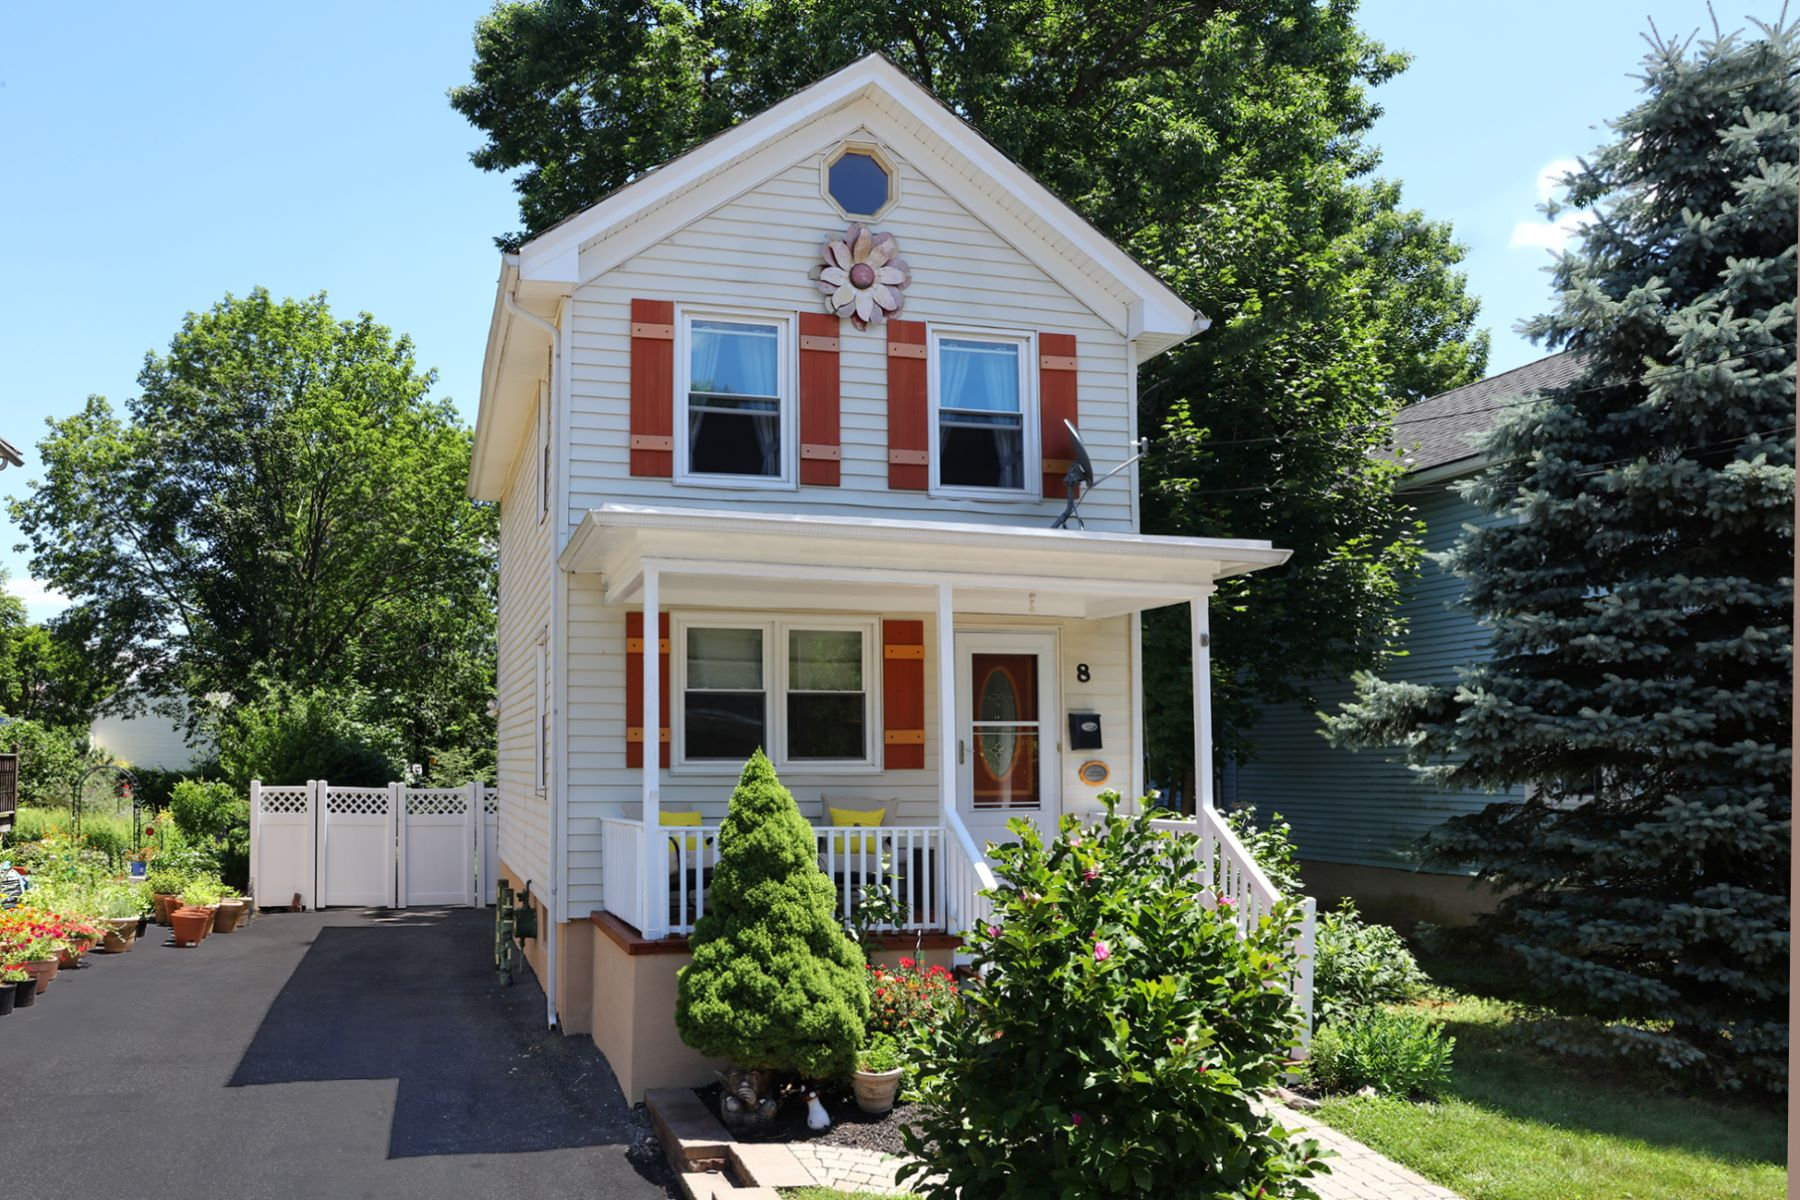 Single Family Homes for Sale at Built to Last. Priced to Sell! 8 Brown Street, Flemington, New Jersey 08822 United States